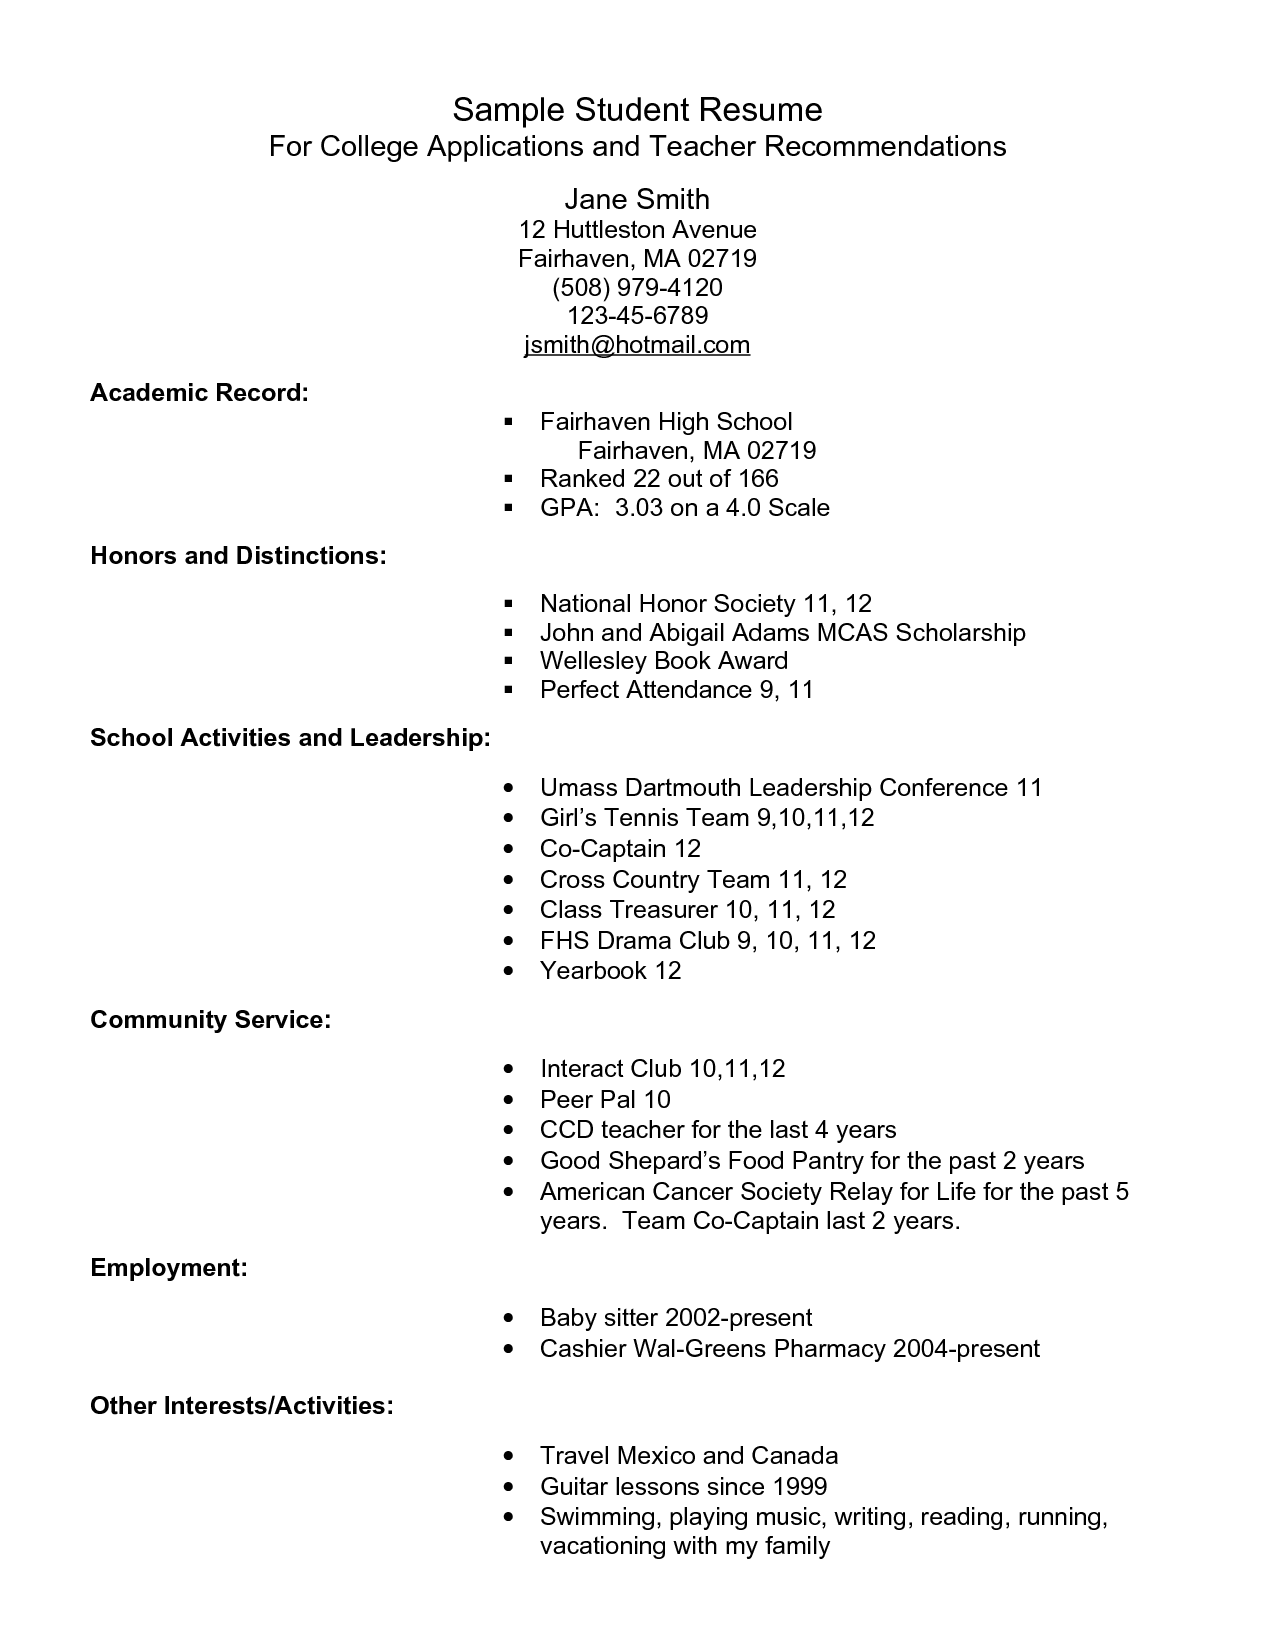 Recent College Graduate Resume Example Resume For High School Students For College Applications